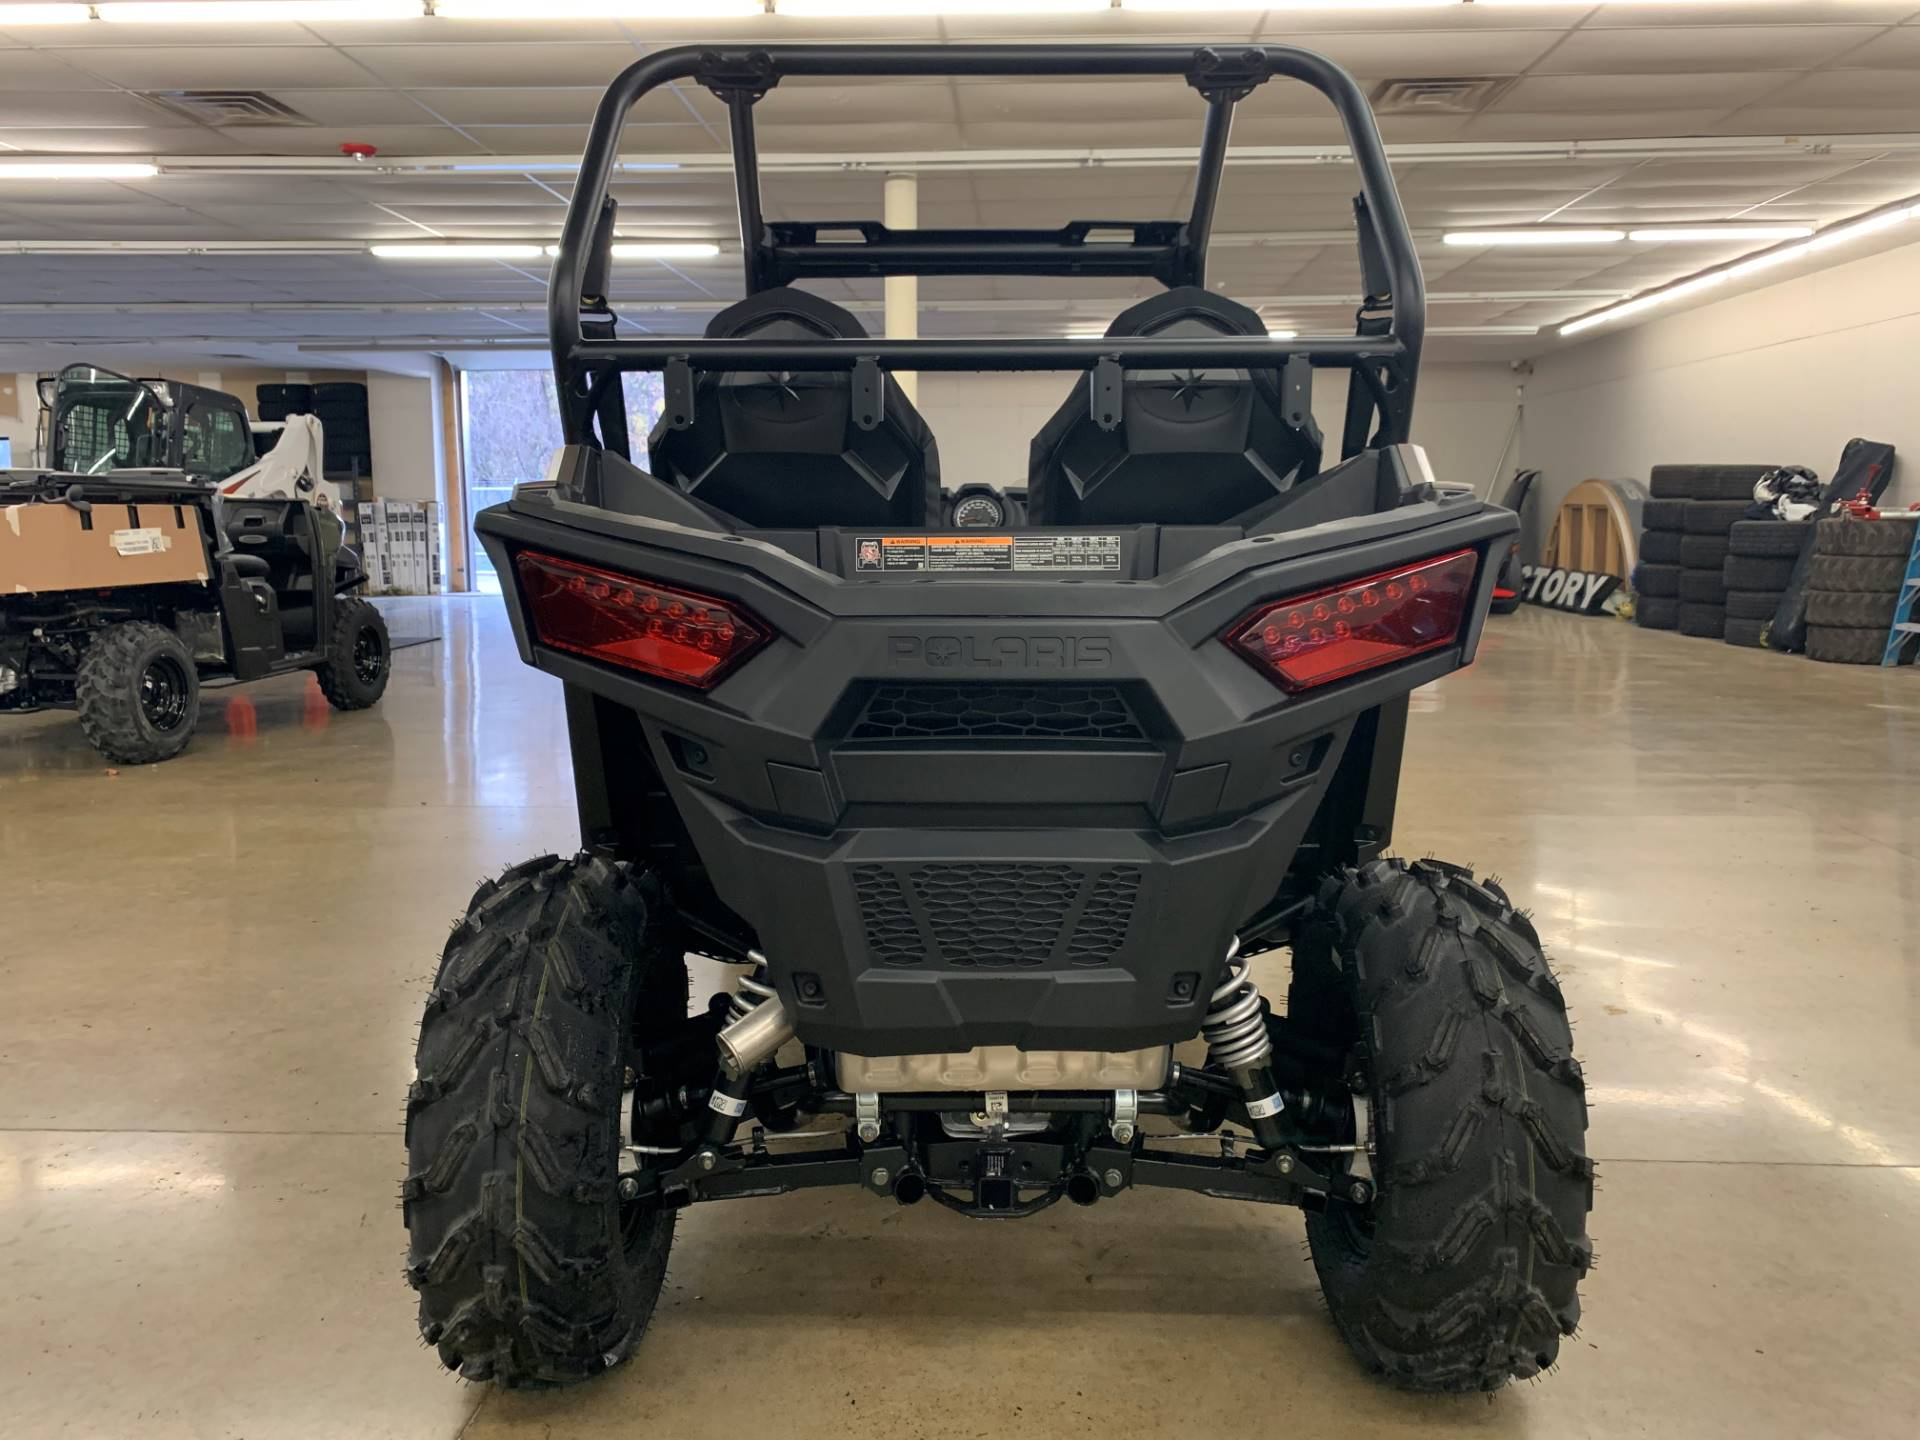 2020 Polaris RZR 900 Premium in Chicora, Pennsylvania - Photo 4